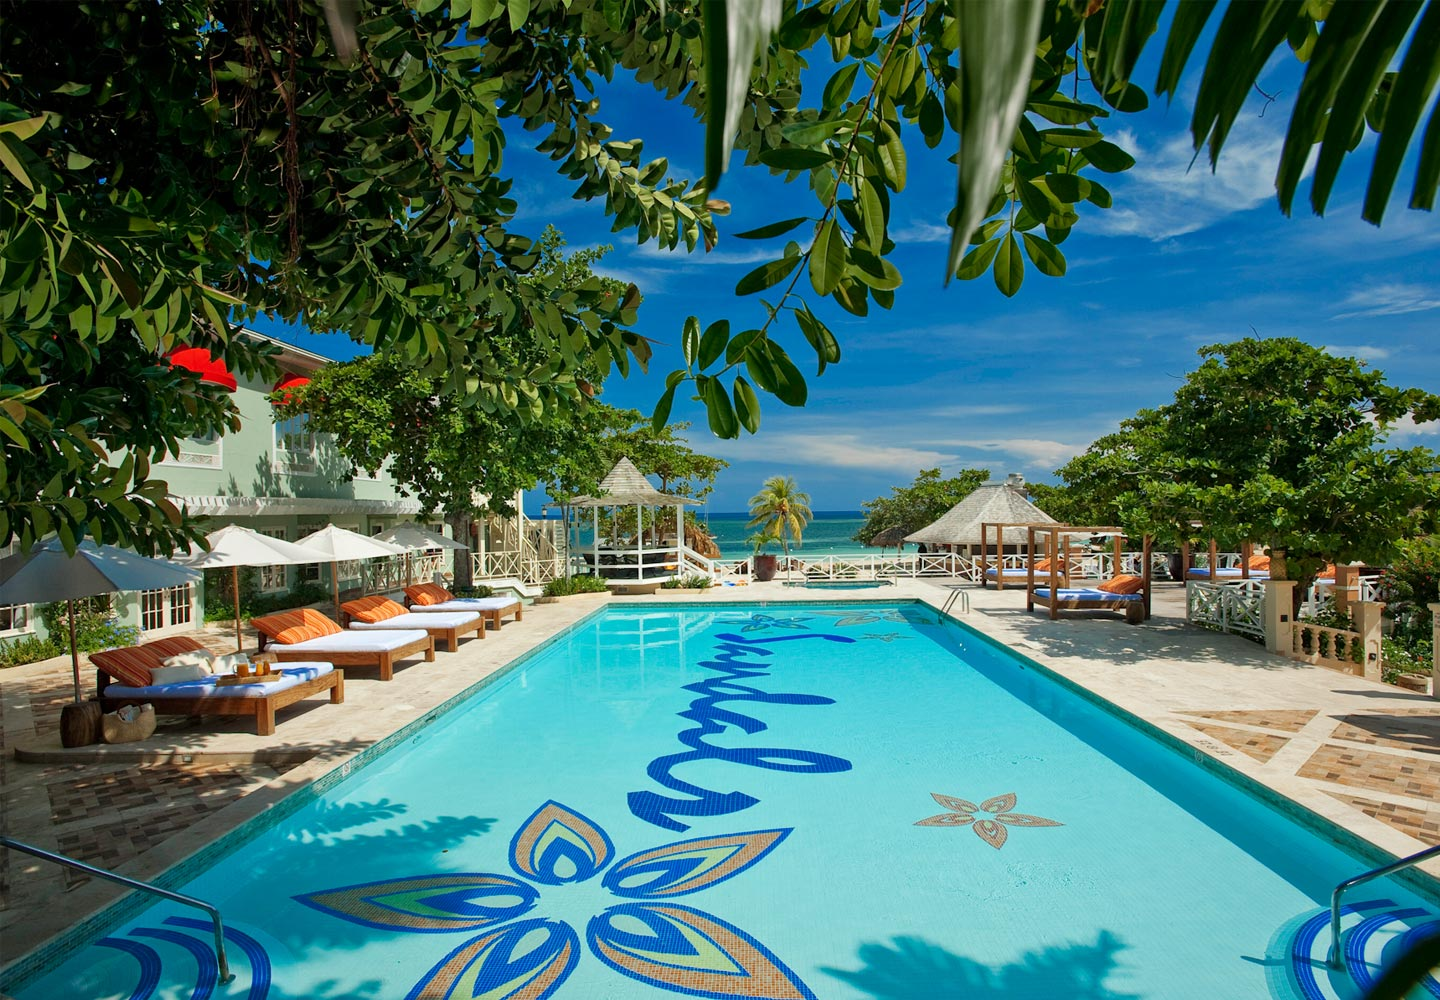 Travel Agency All-Inclusive Resort Sandals Montego Bay 017